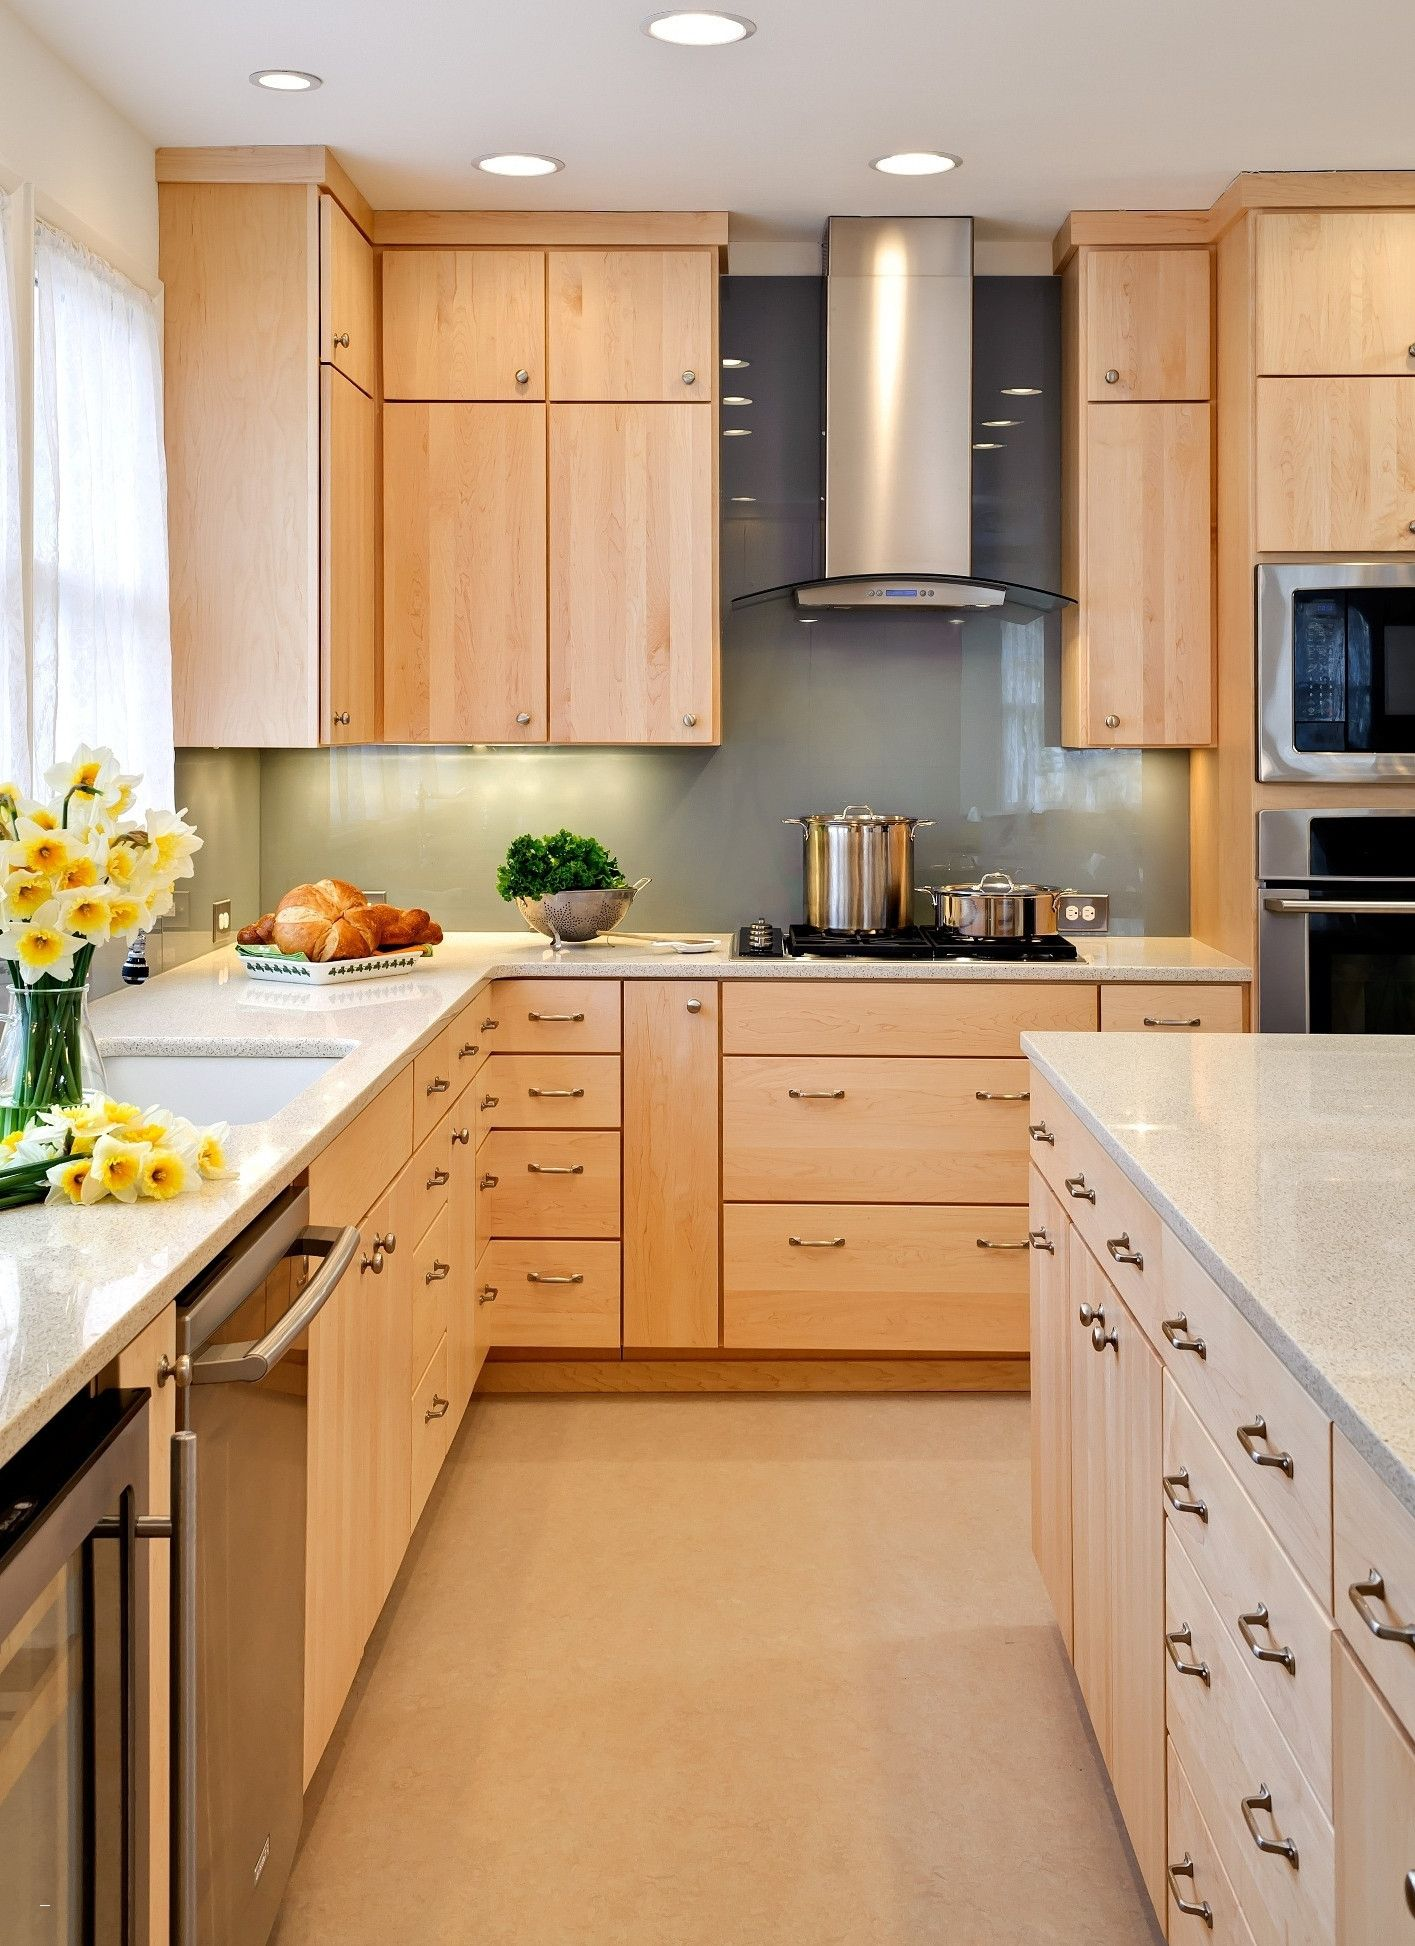 Lovely Kitchen Backsplash Ideas with Maple Cabinets ... on Backsplash Ideas For Maple Cabinets  id=16989